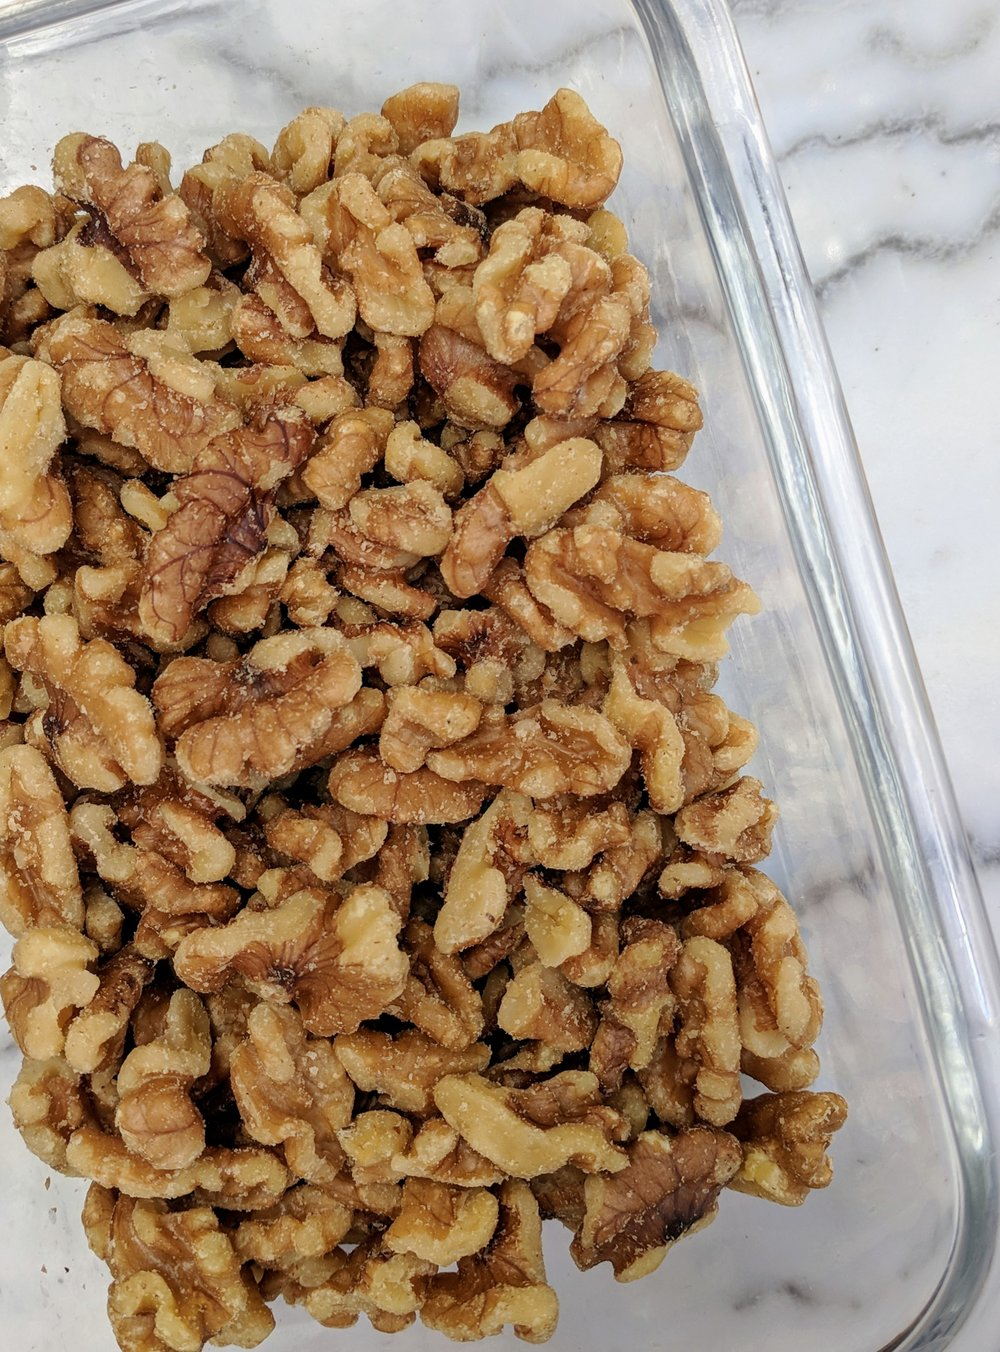 Walnuts are an excellent source of plant based omega 3 fatty acids. They are a nutrient dense snack perfect to keep at your desk, in your car, or backpack to fuel your through a long day.